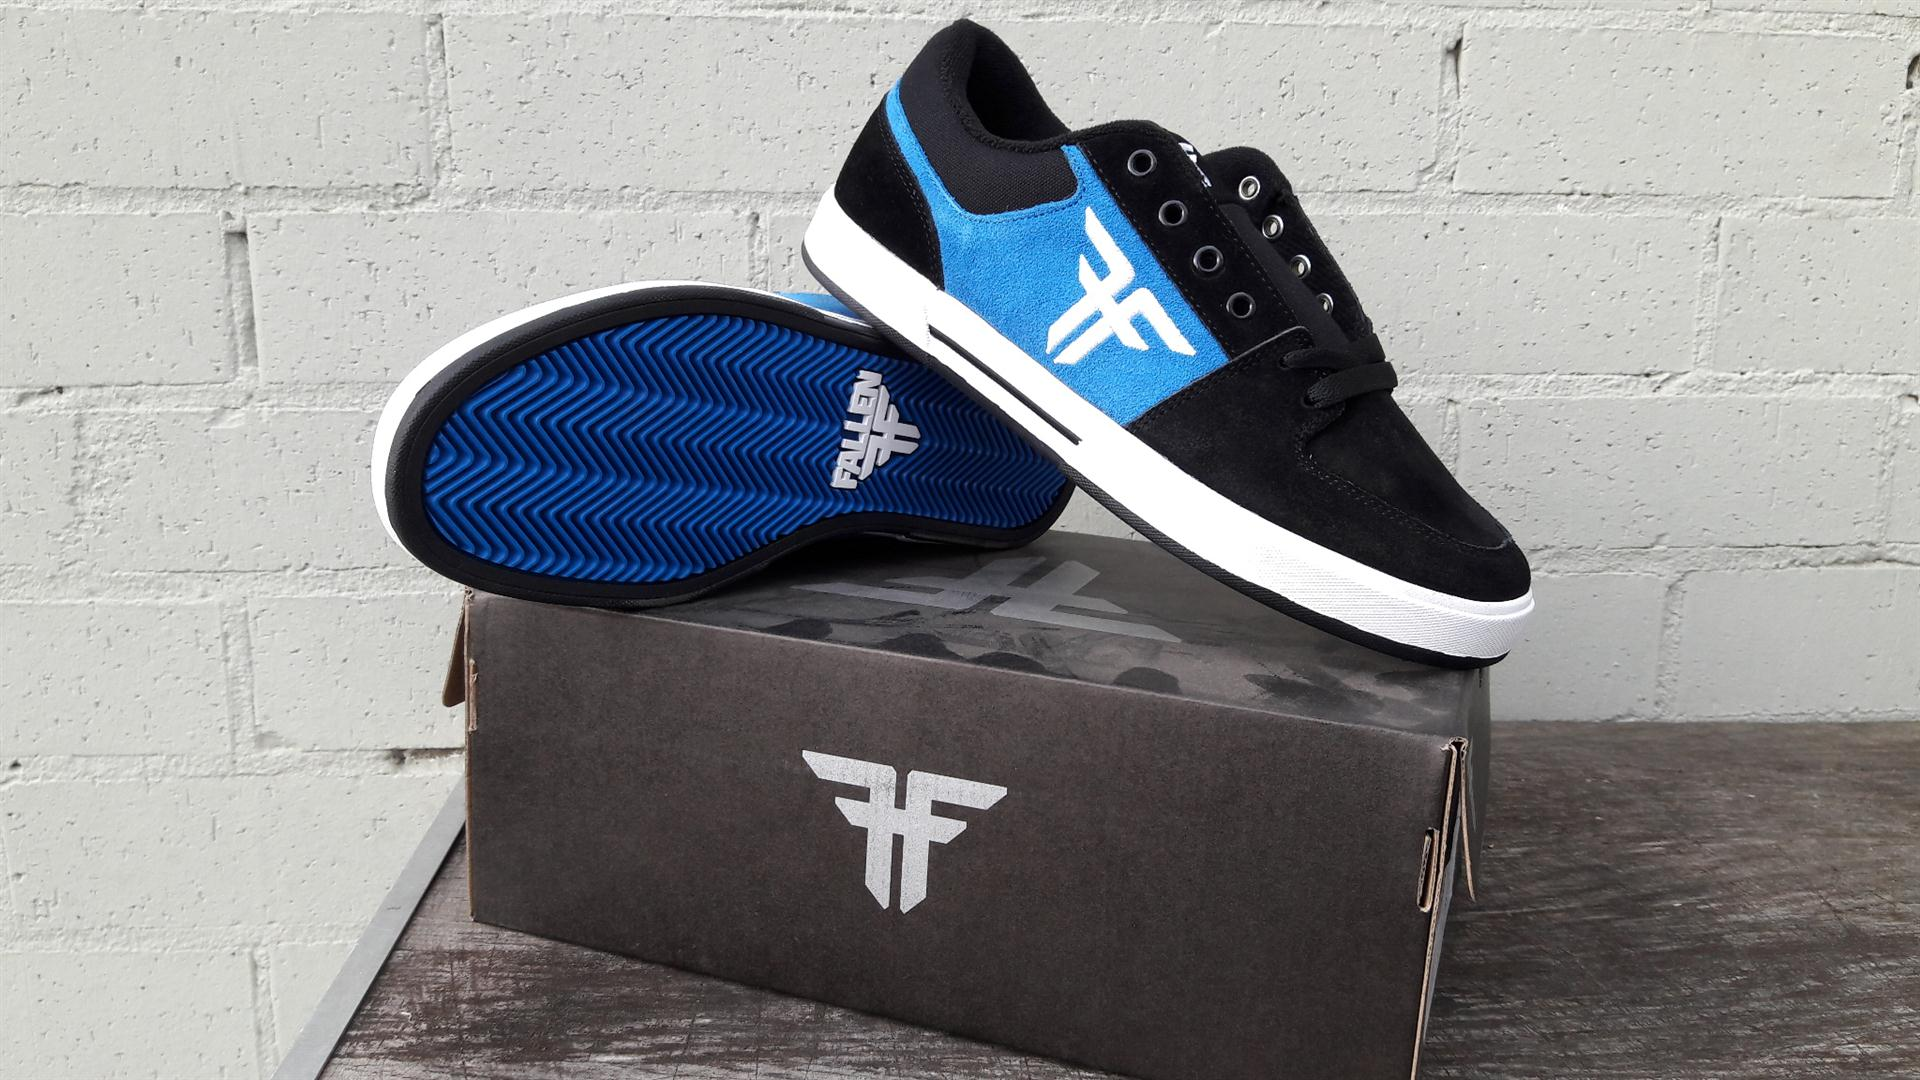 Fallen Shoes Patriot Black Blue Free Post New Skateboard Sneakers limited edition